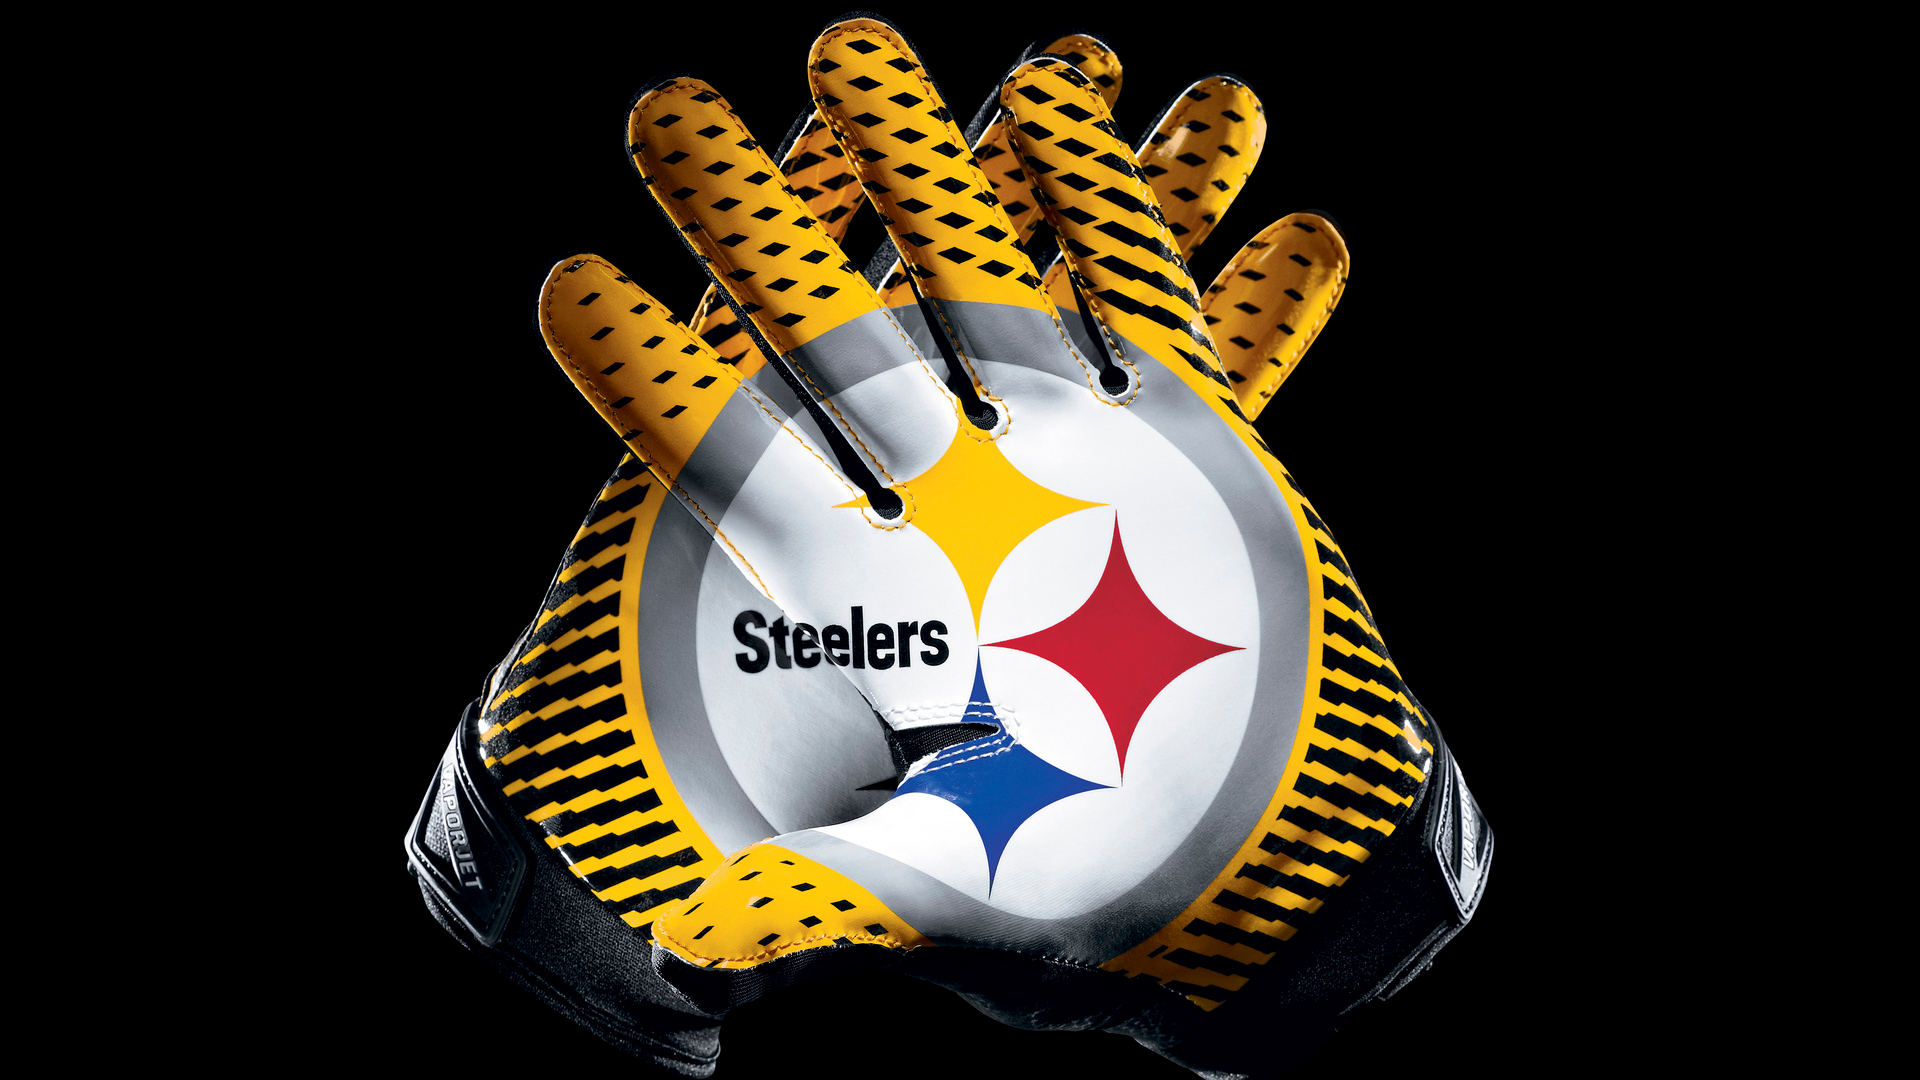 1920x1080 - Steelers Desktop 33